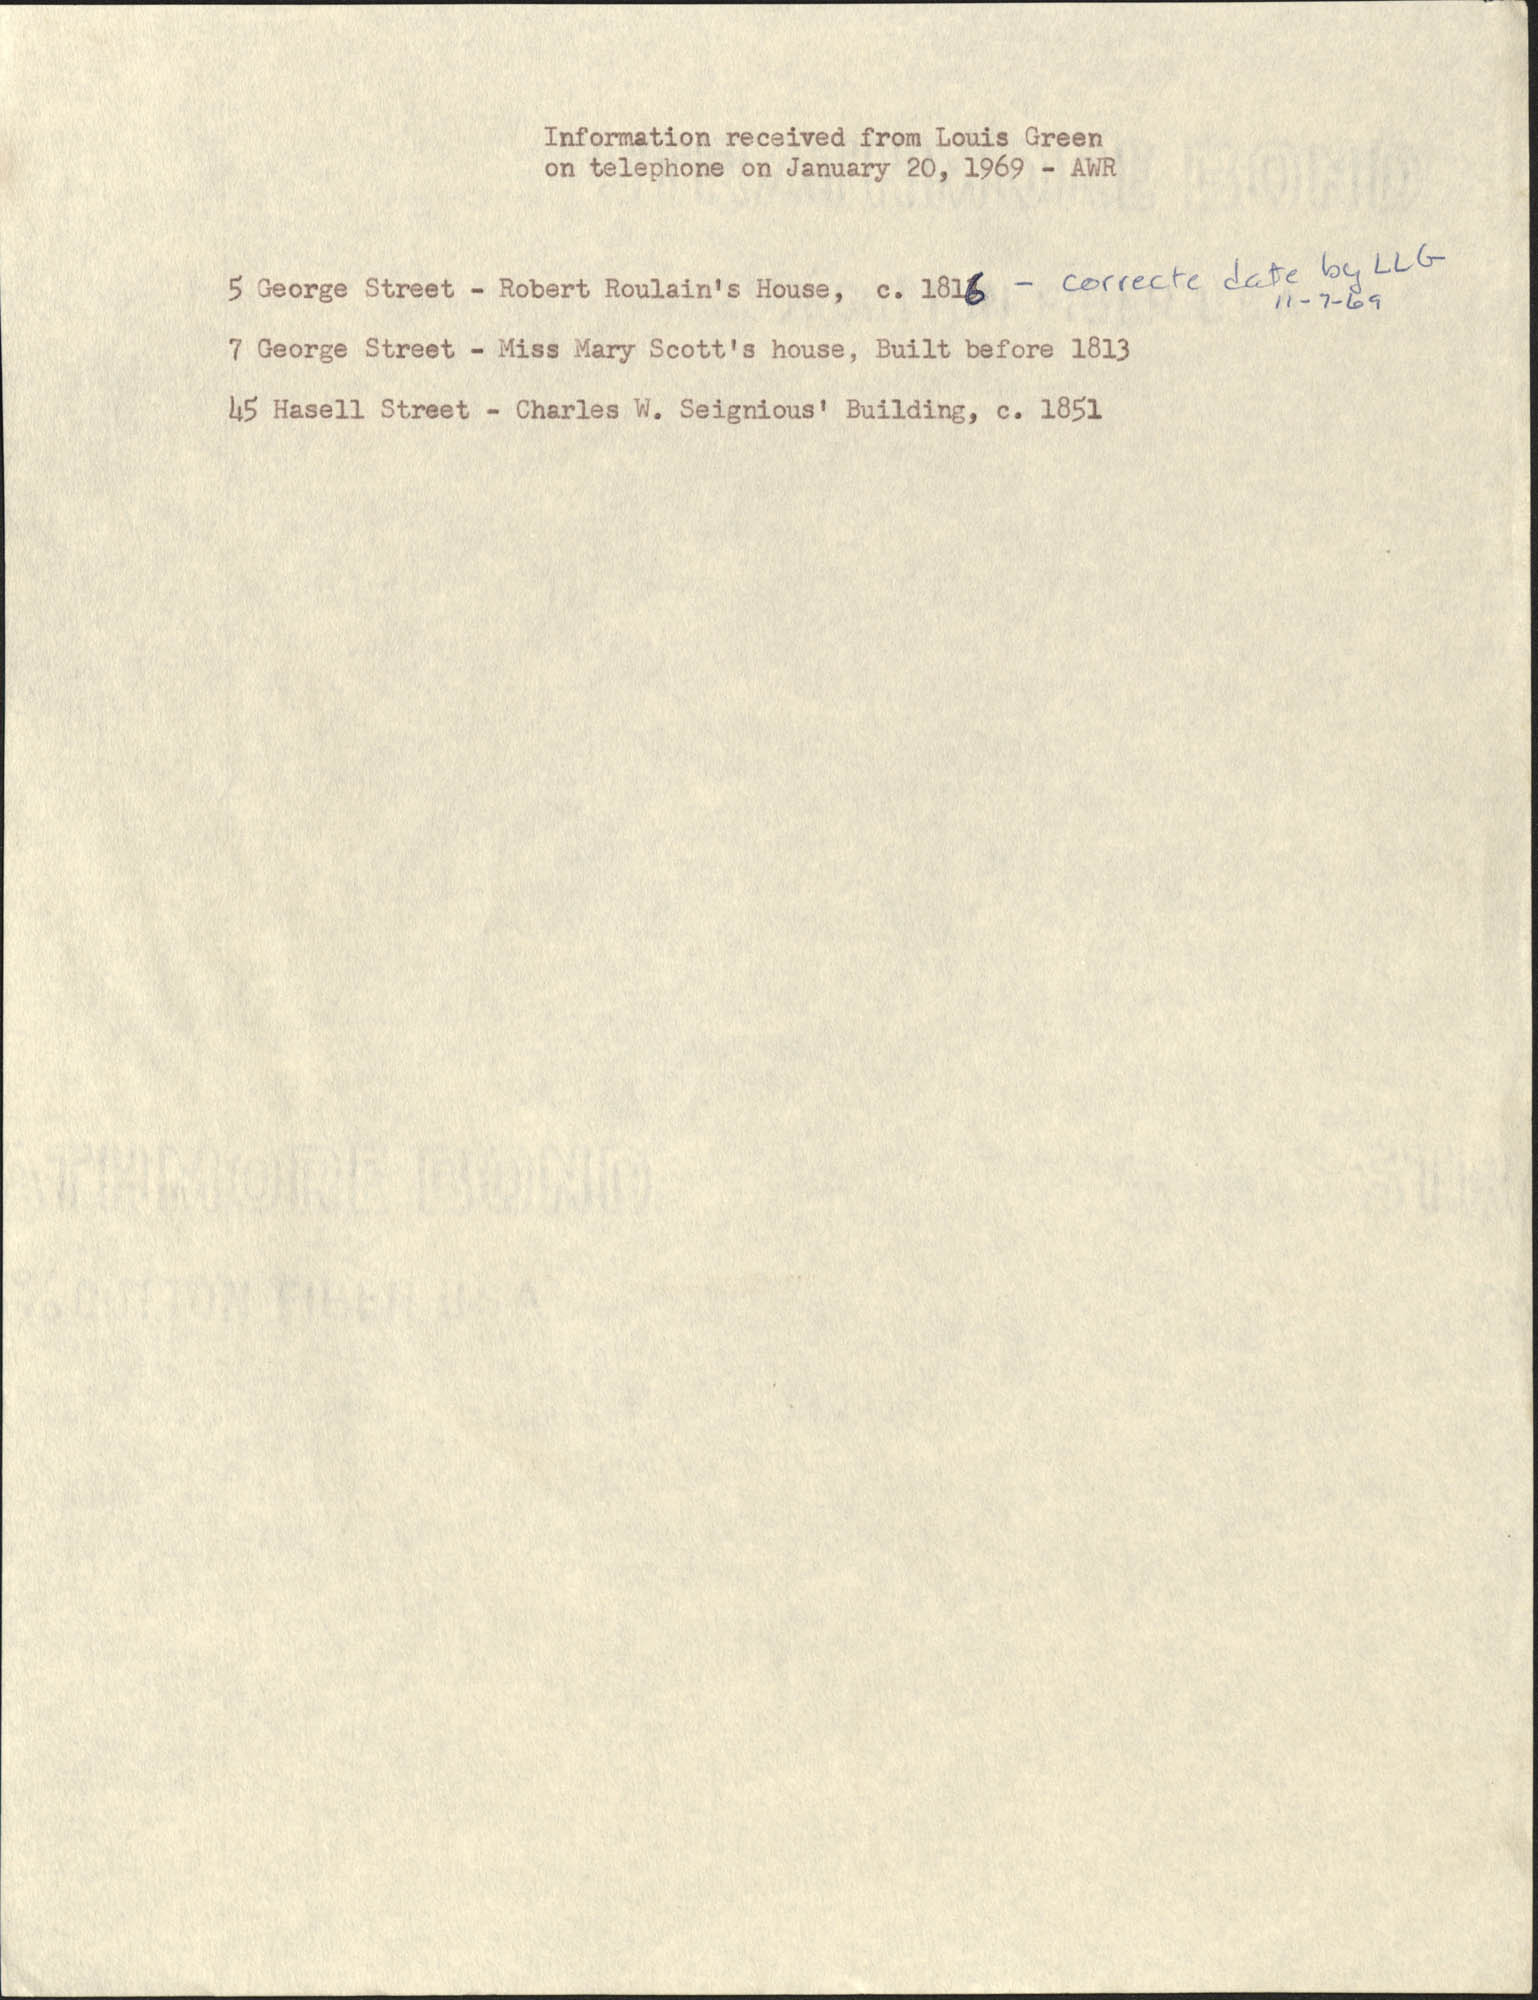 Information received from Louis Green on telephone on January 20, 1969 - AWR